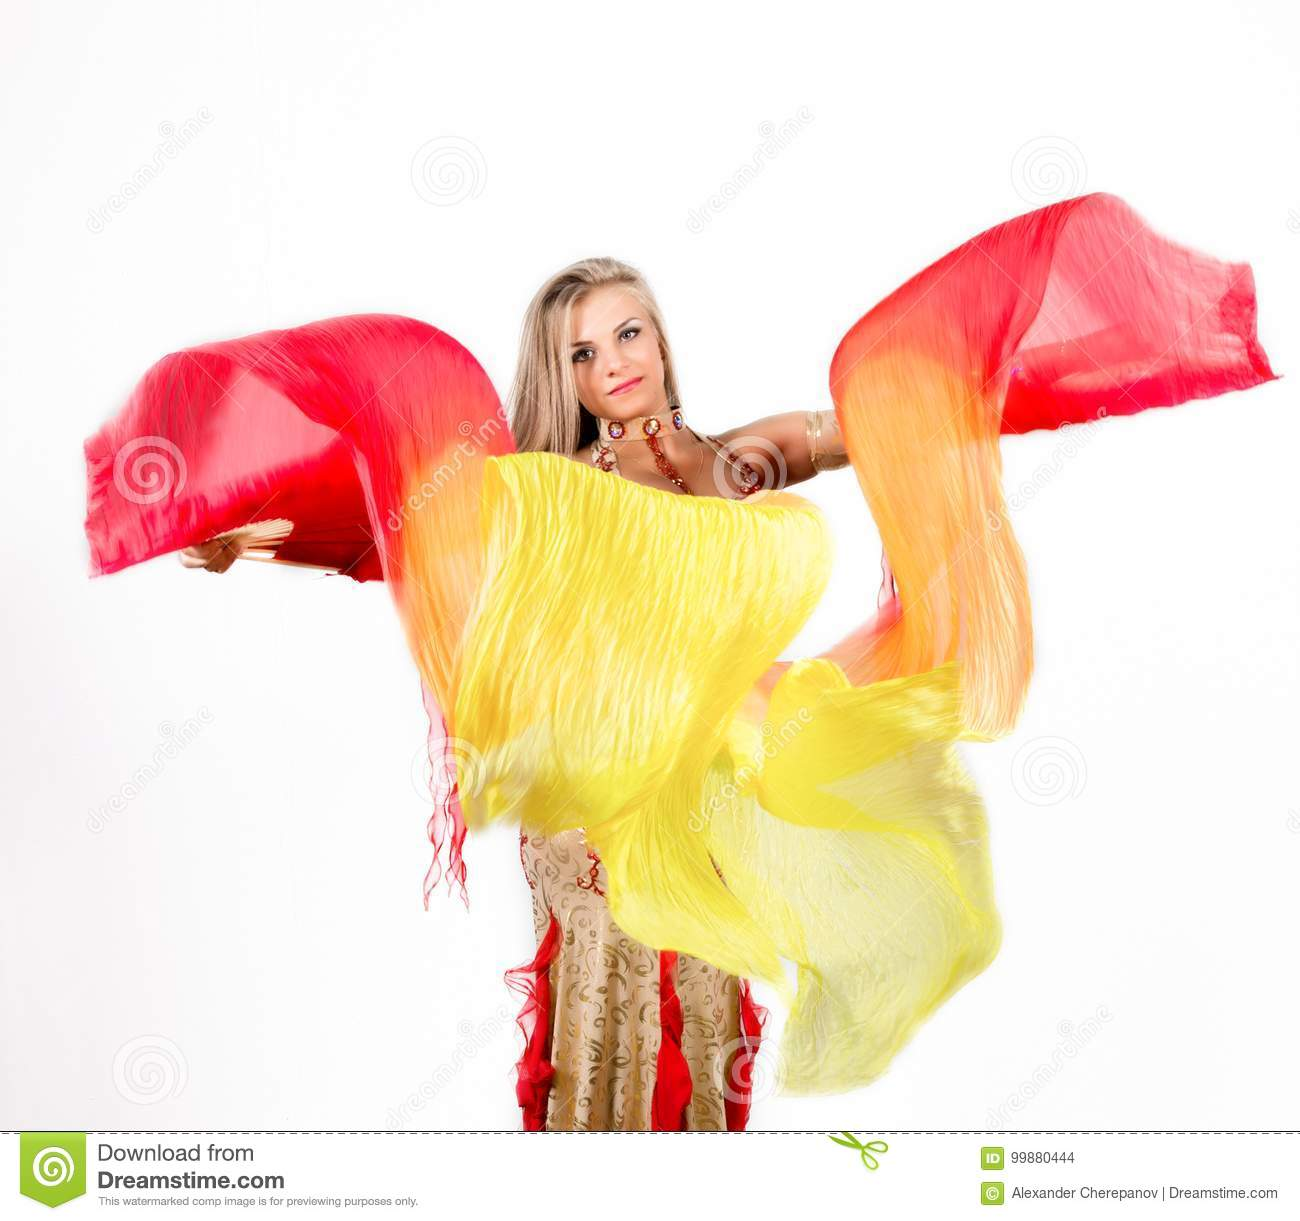 Arabic dance with fans and ribbons performed by a beautiful plump woman